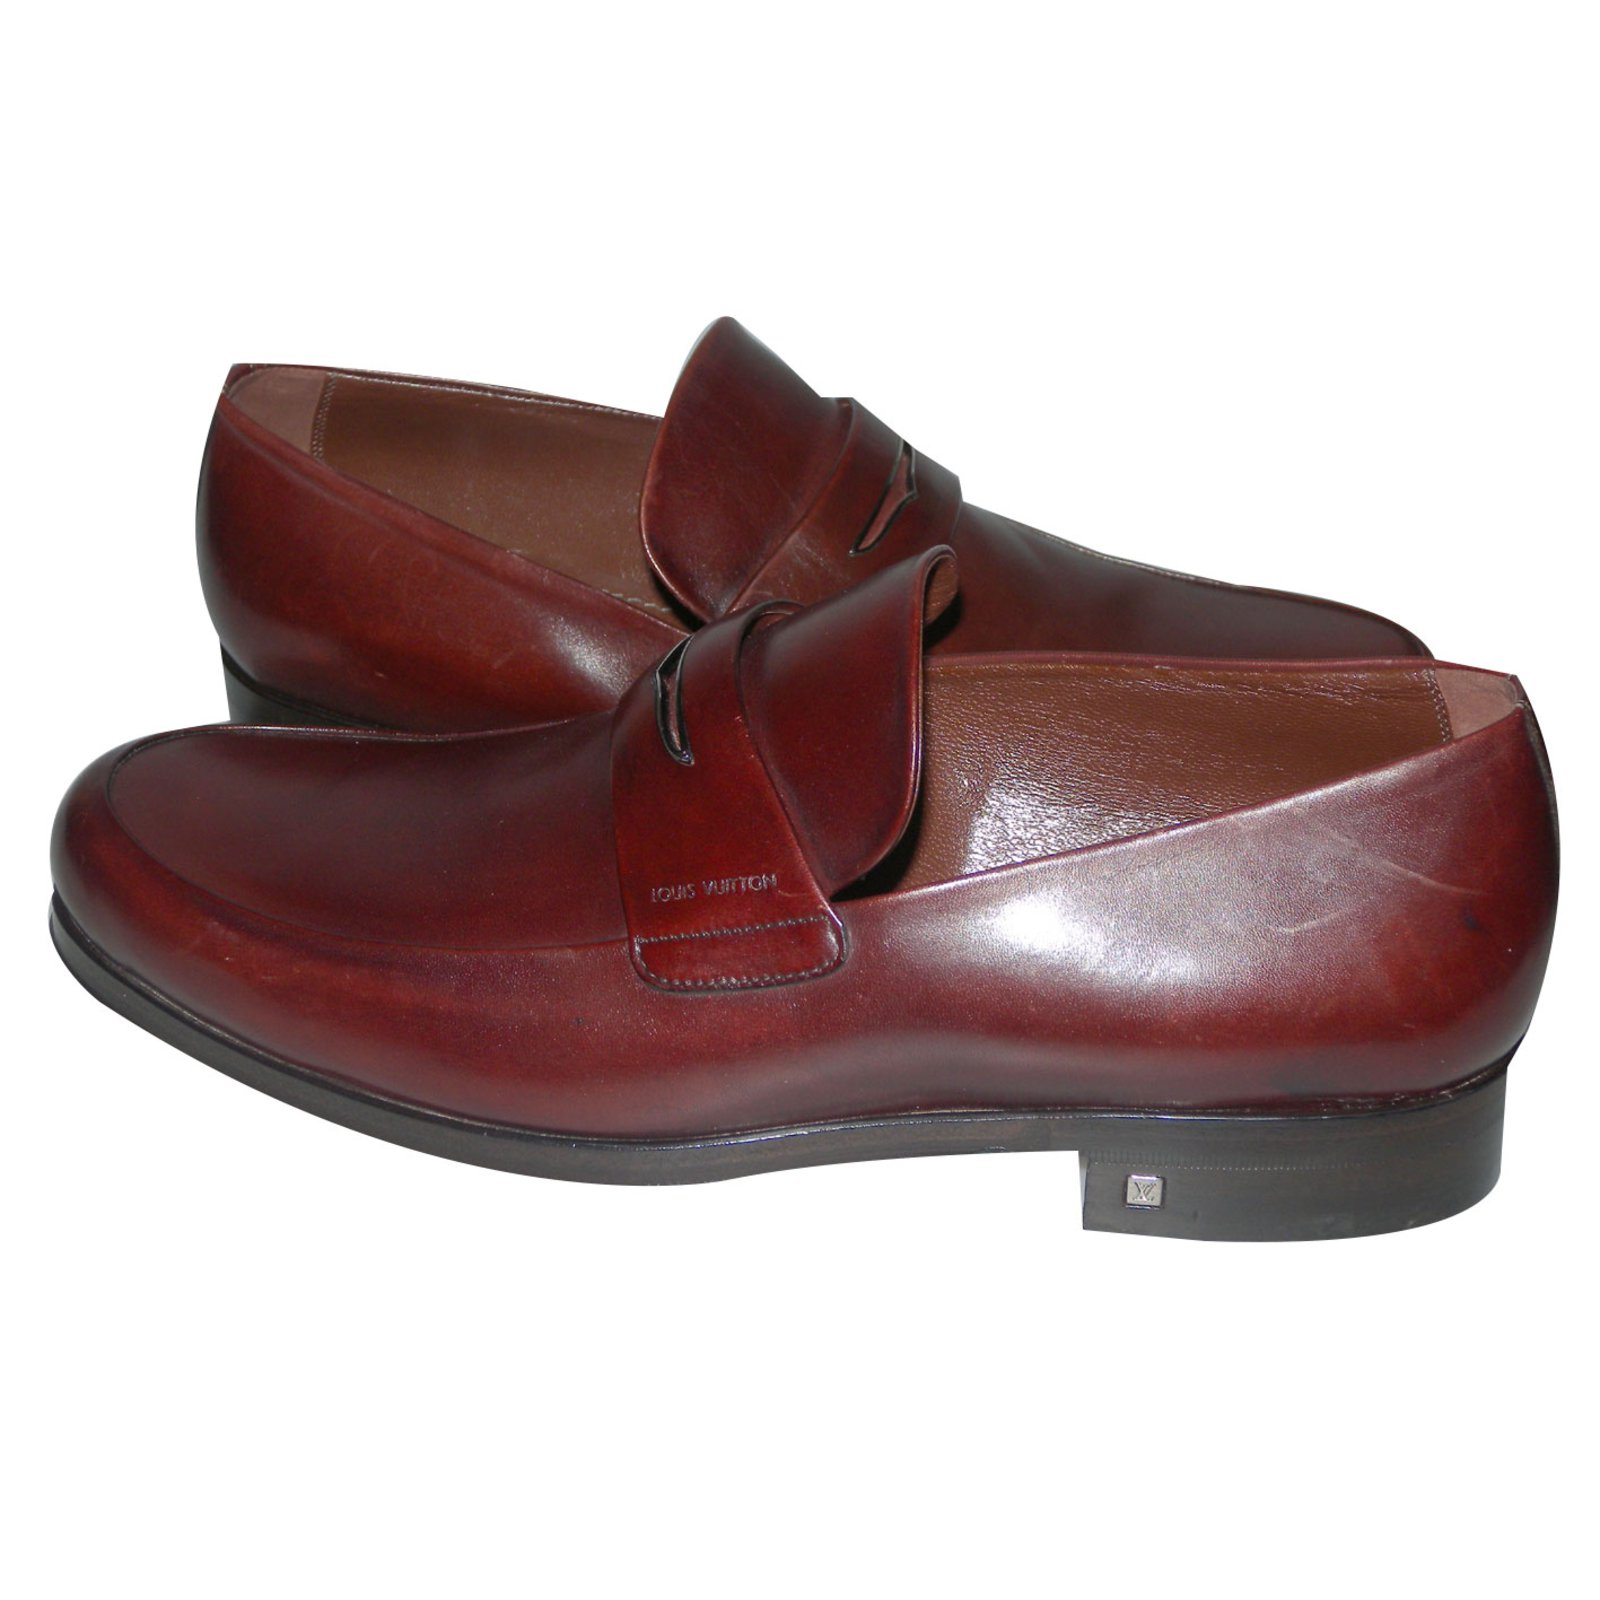 26b120597d9d Loafers Slip ons Louis Vuitton · Facebook · Pin This . ...